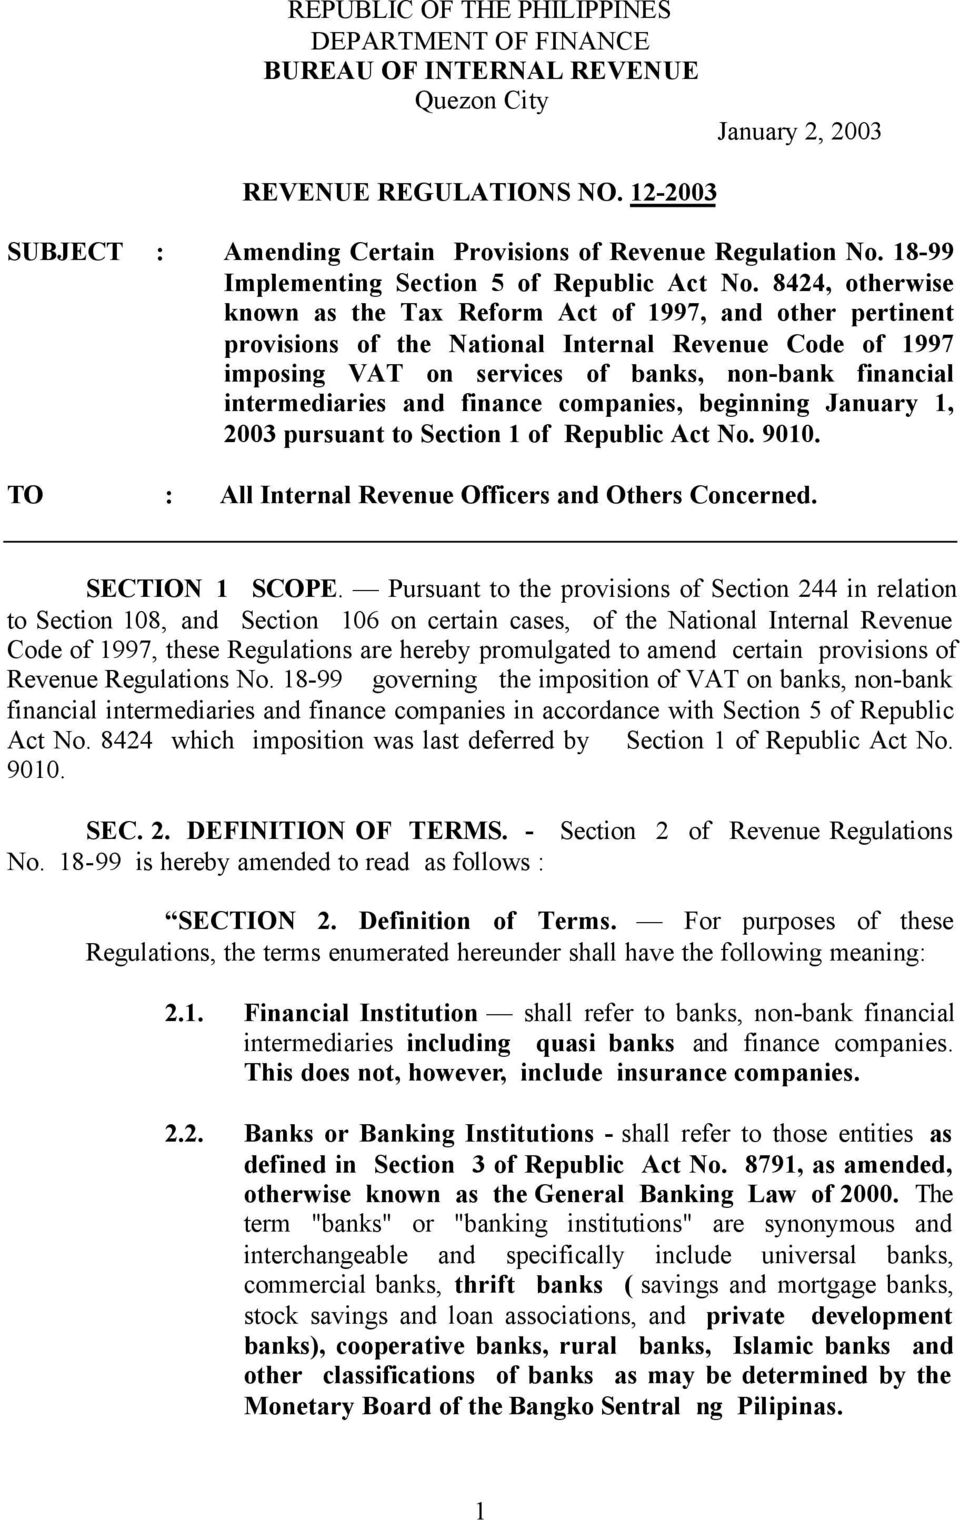 8424, otherwise known as the Tax Reform Act of 1997, and other pertinent provisions of the National Internal Revenue Code of 1997 imposing VAT on services of banks, non-bank financial intermediaries